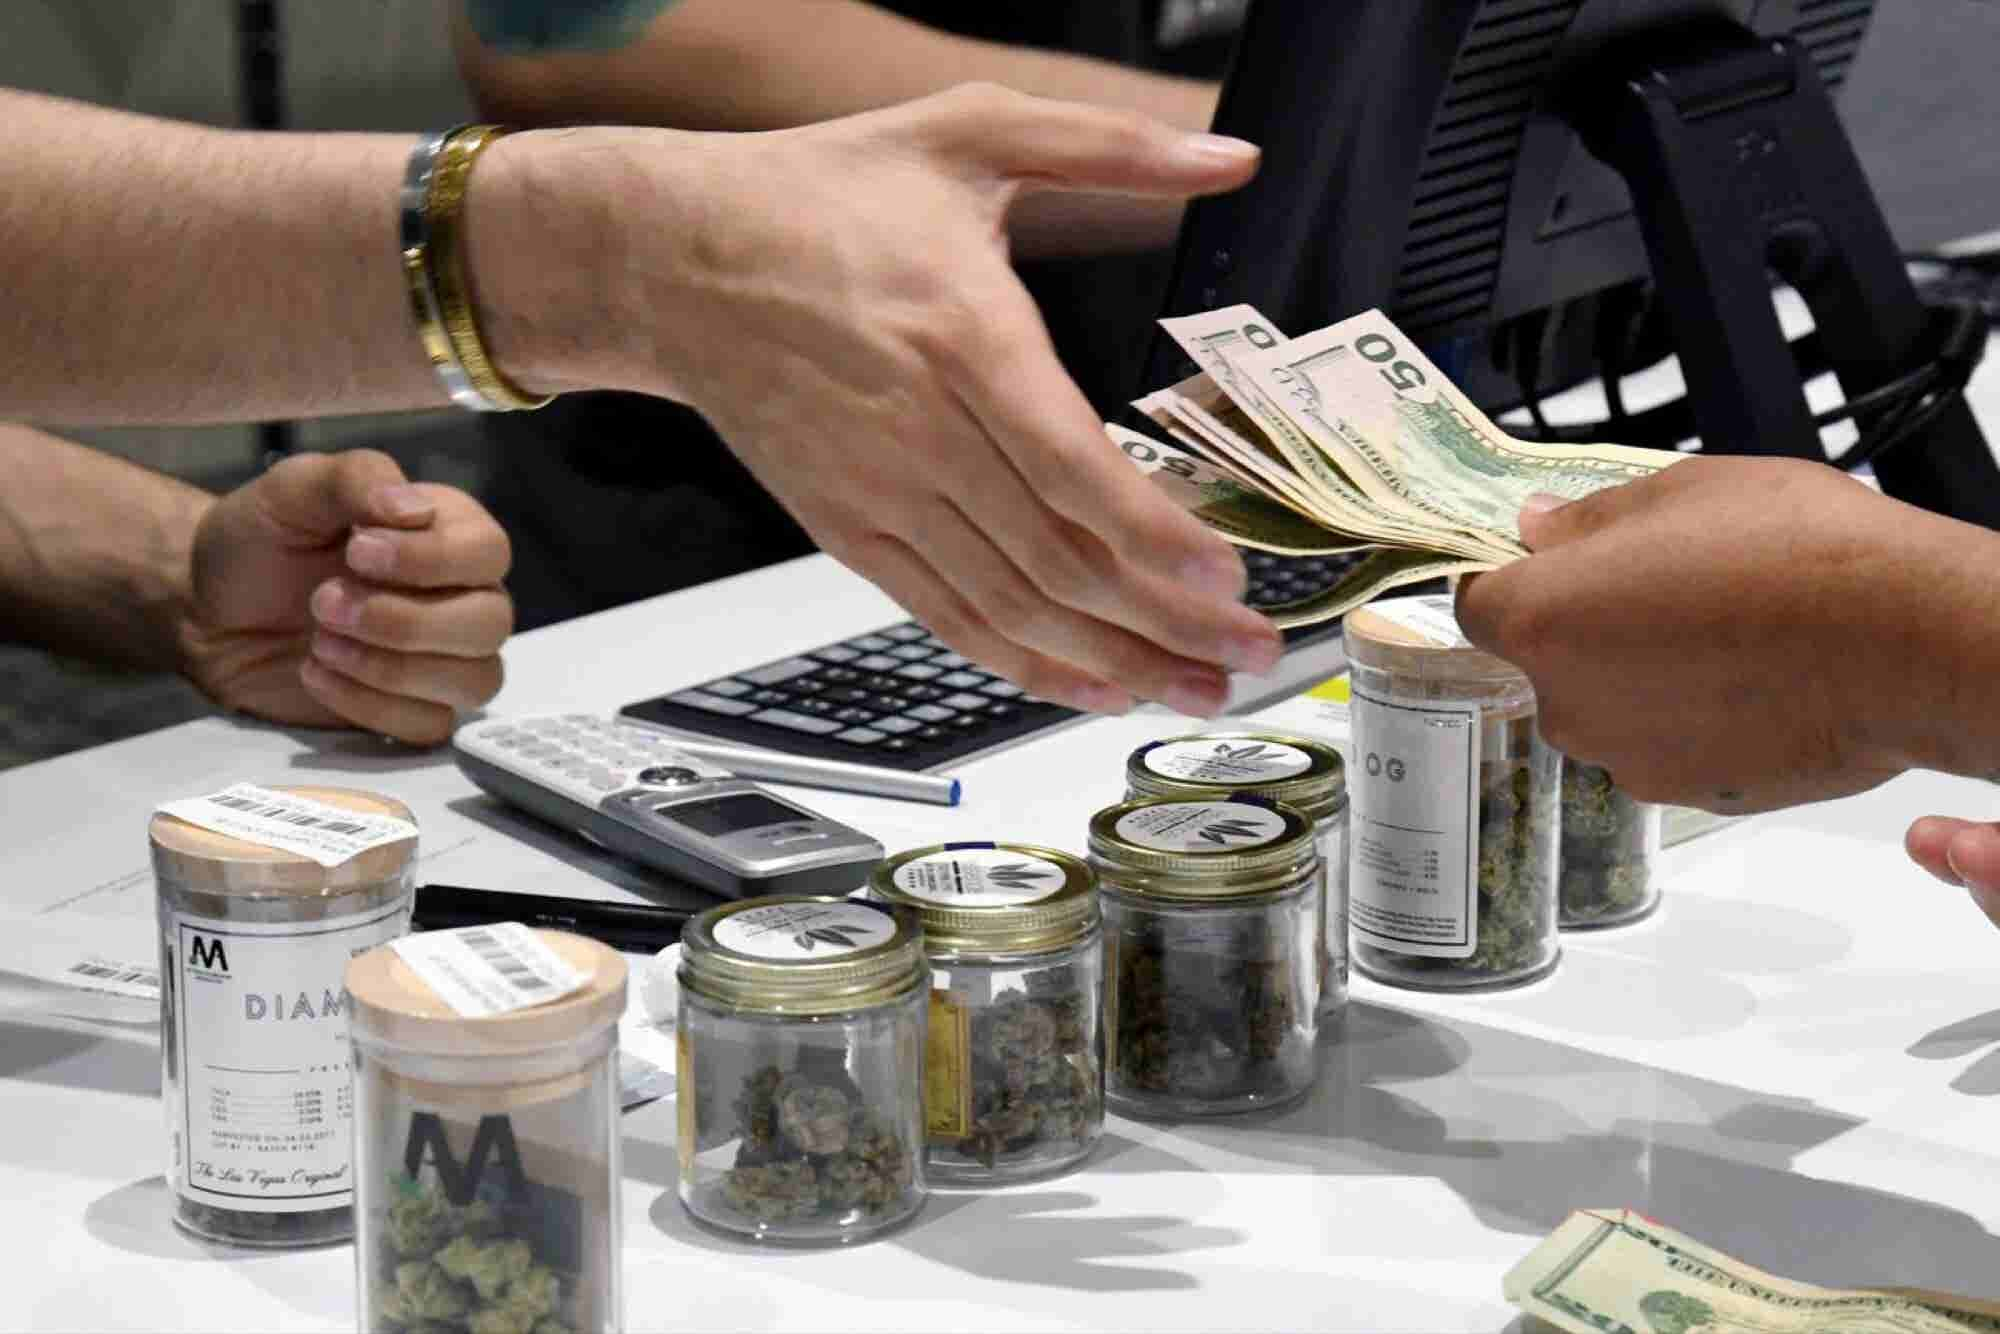 Nevada Has a Legal Marijuana Shortage But Still Expects $120 Million In New Revenue